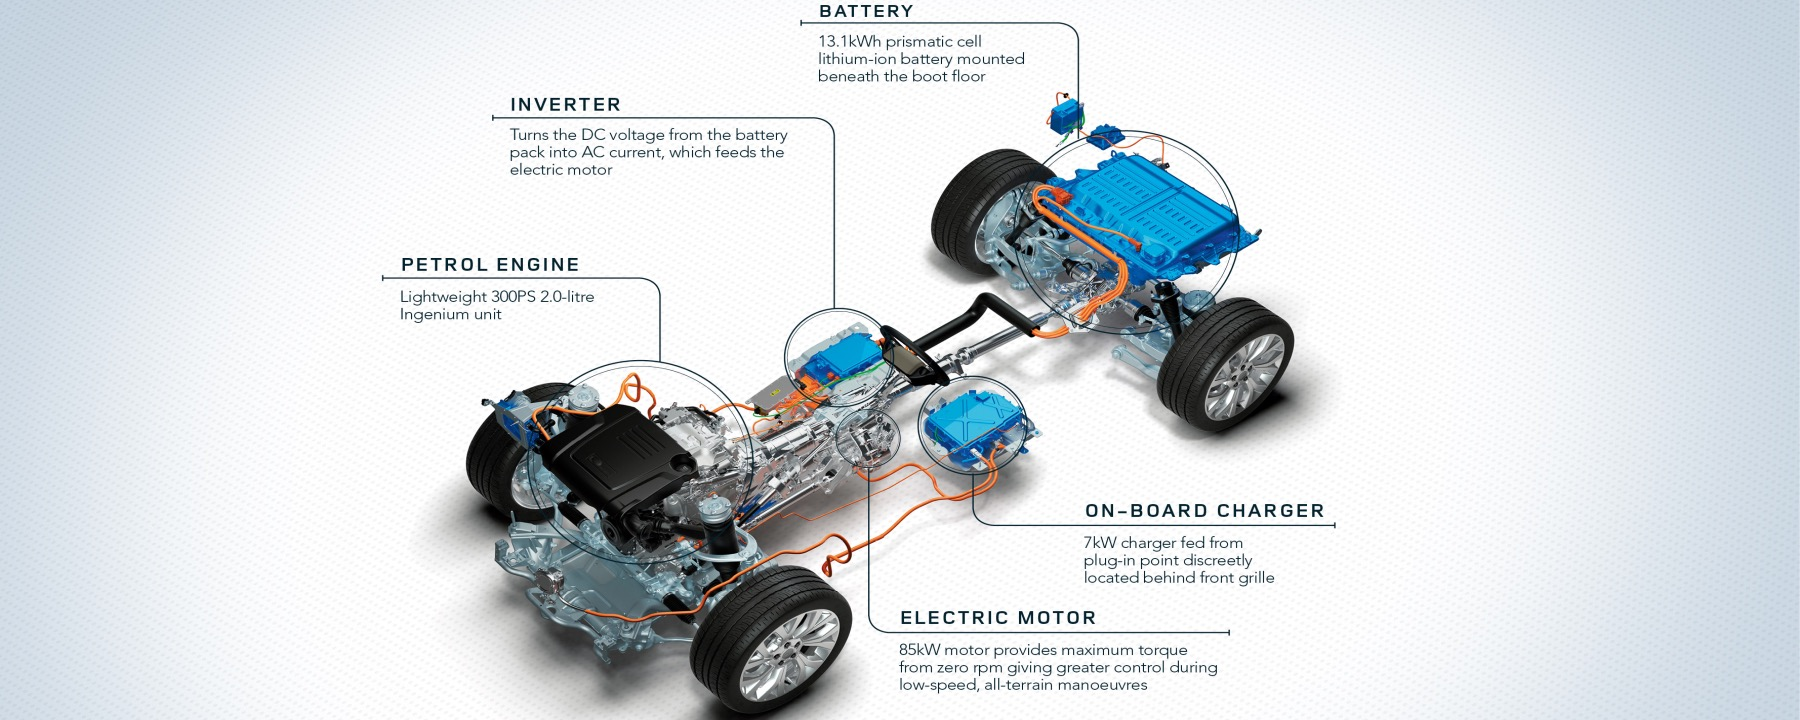 Discovering The Range Rover Svautobiography Indigo Auto Group Blog Electric Car Engine Diagram Land Media 2